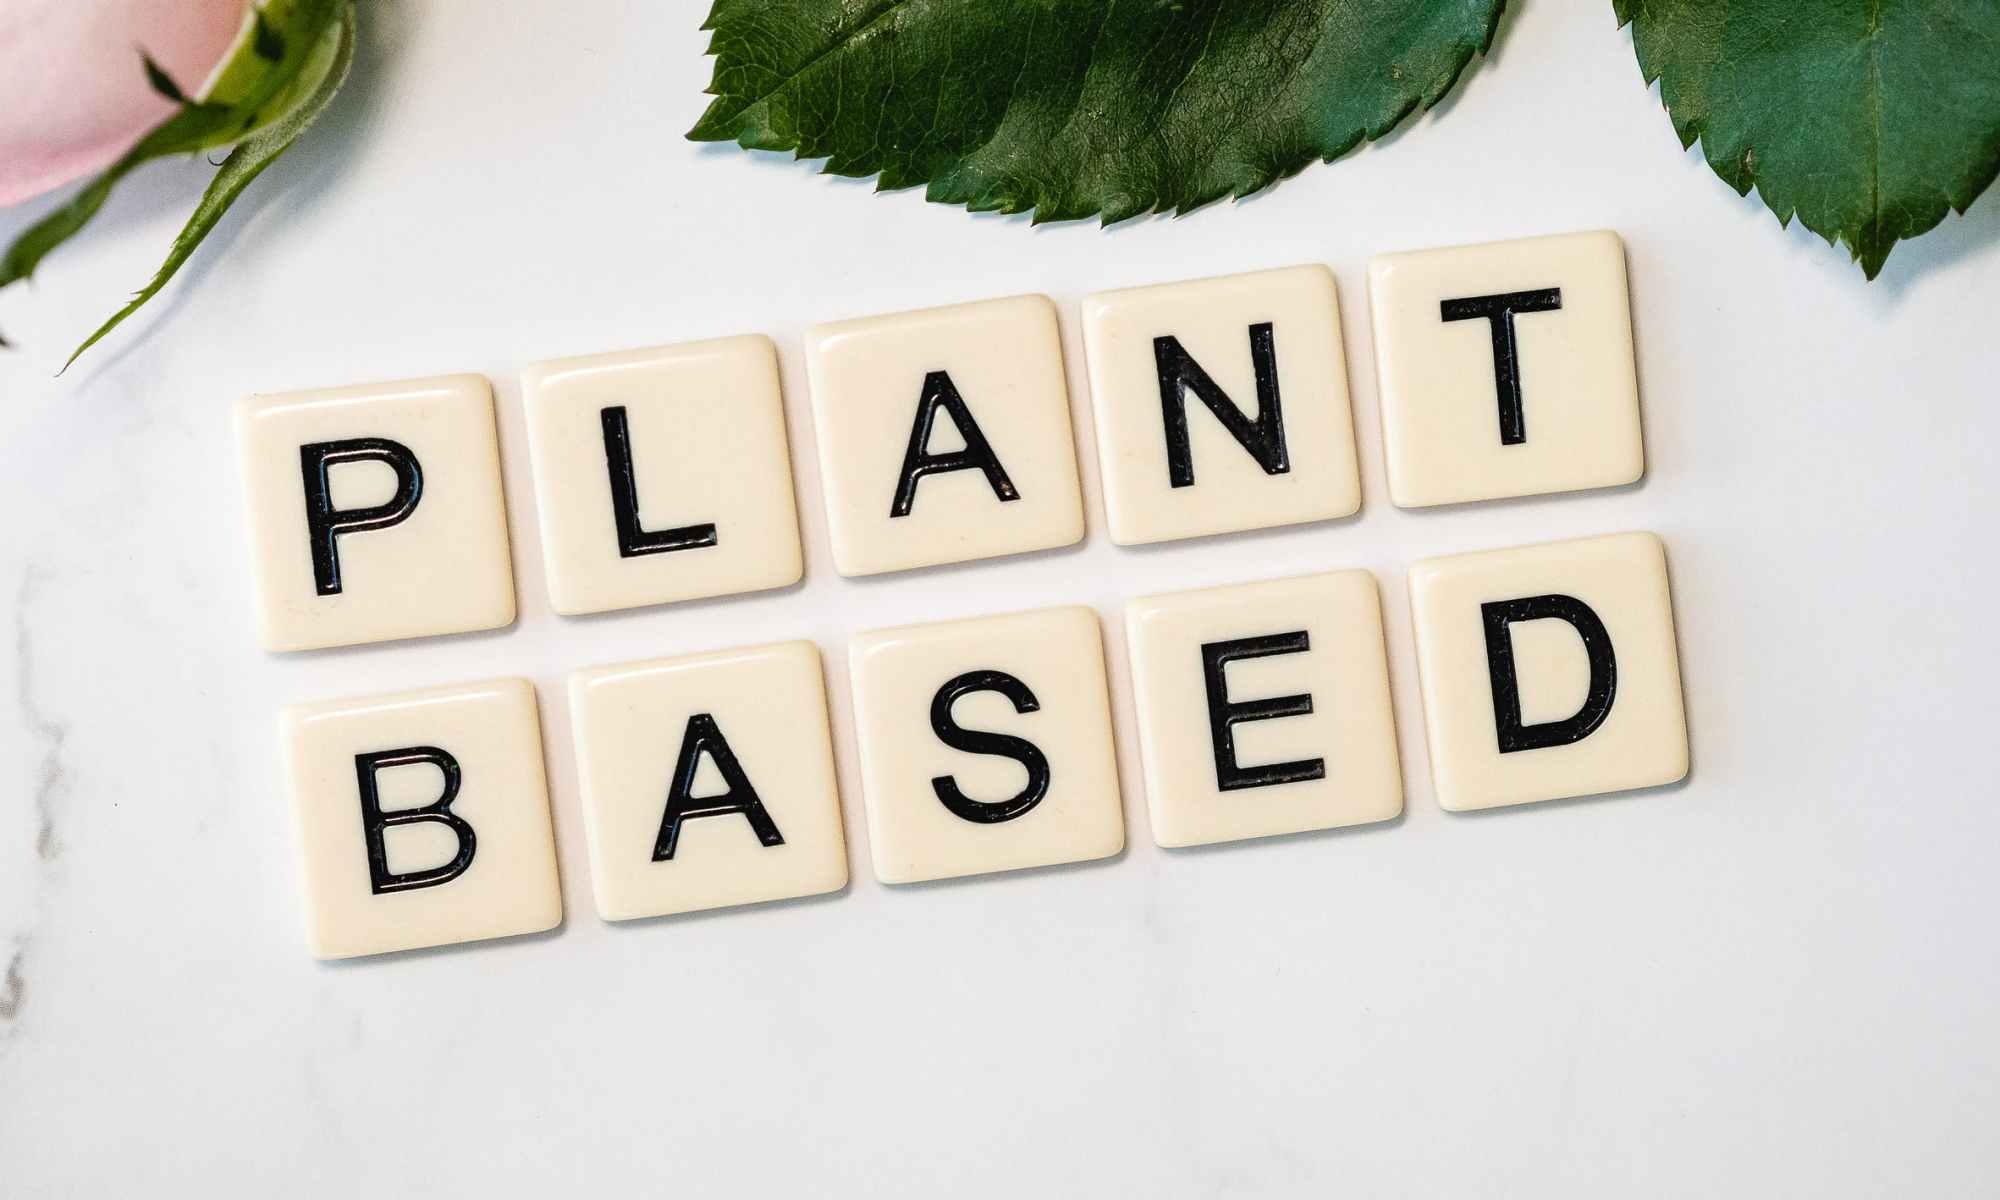 Plant-Based / Vegetarian / Vegan. What's the difference?